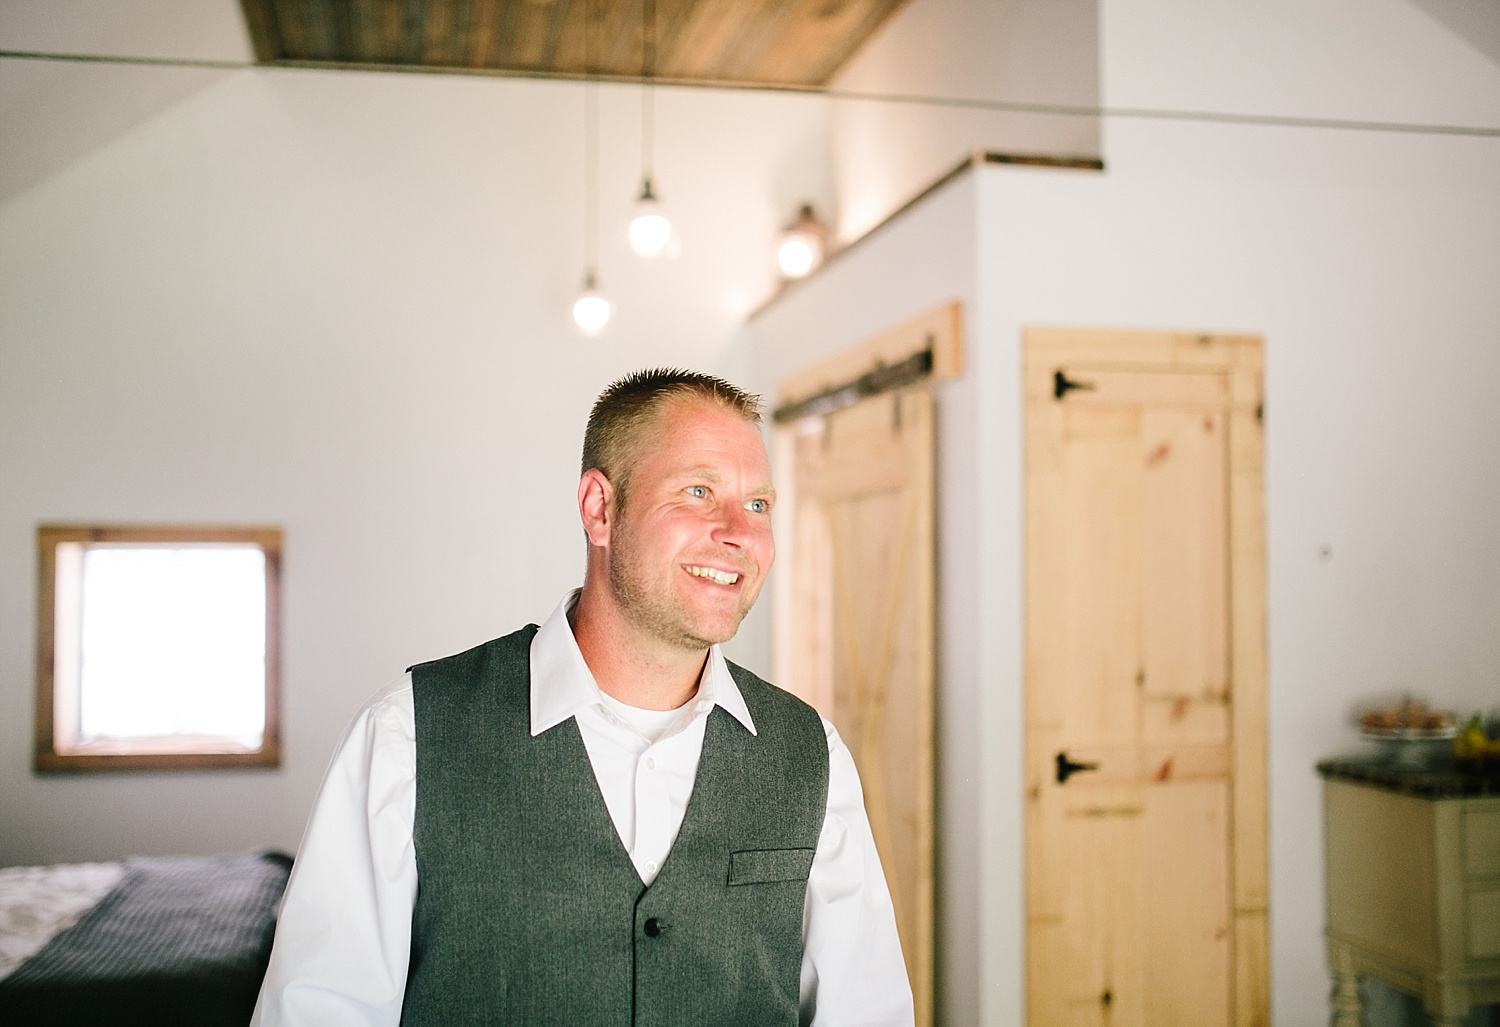 jennyryan_newbeginnings_farmstead_upstatenewyork_wedding_image047.jpg